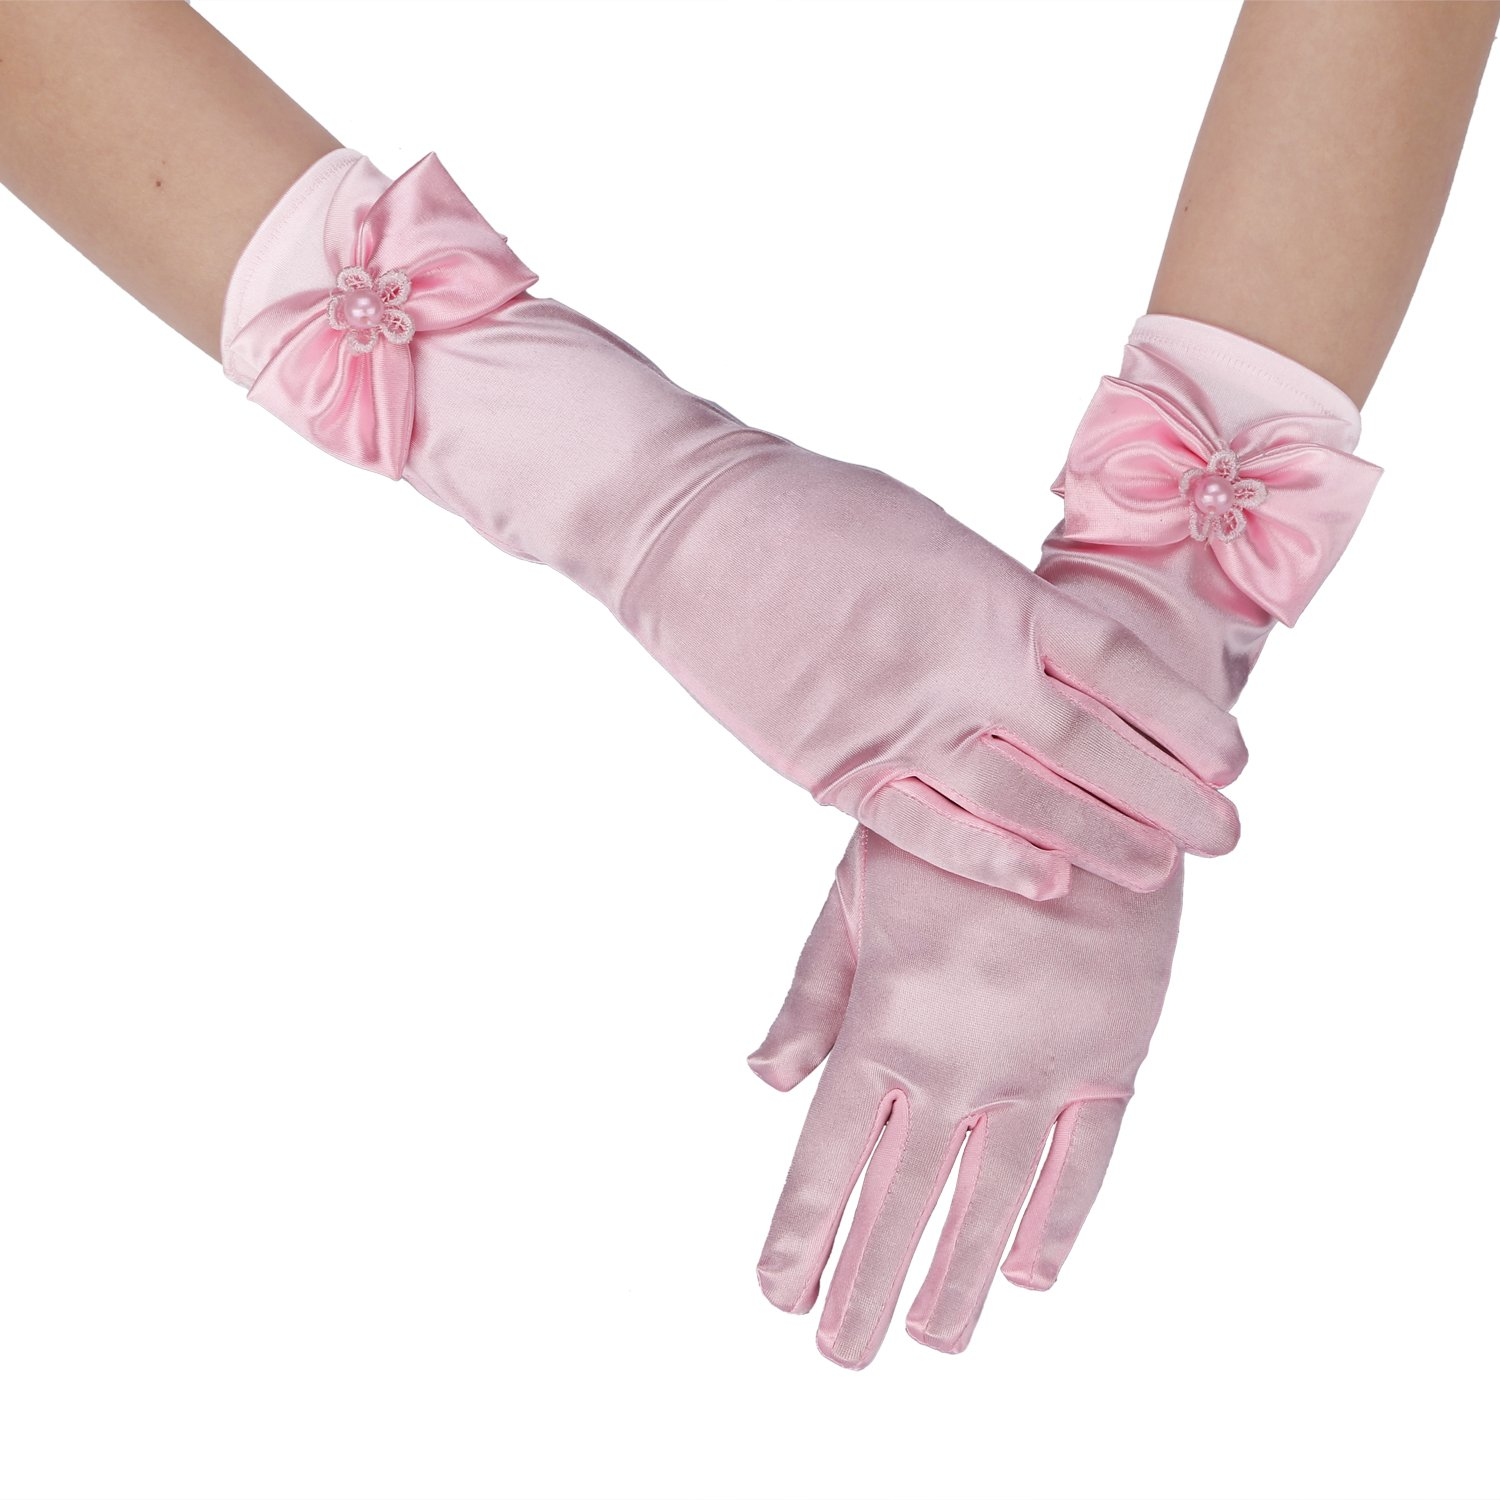 Long Satin Formal Gloves,Kids Size Full Finger with Pearl Bowknot for Girls Children Wedding Dress Evening Party Pageant,Elbow Length 10BL,Light Pink QNG002-LP